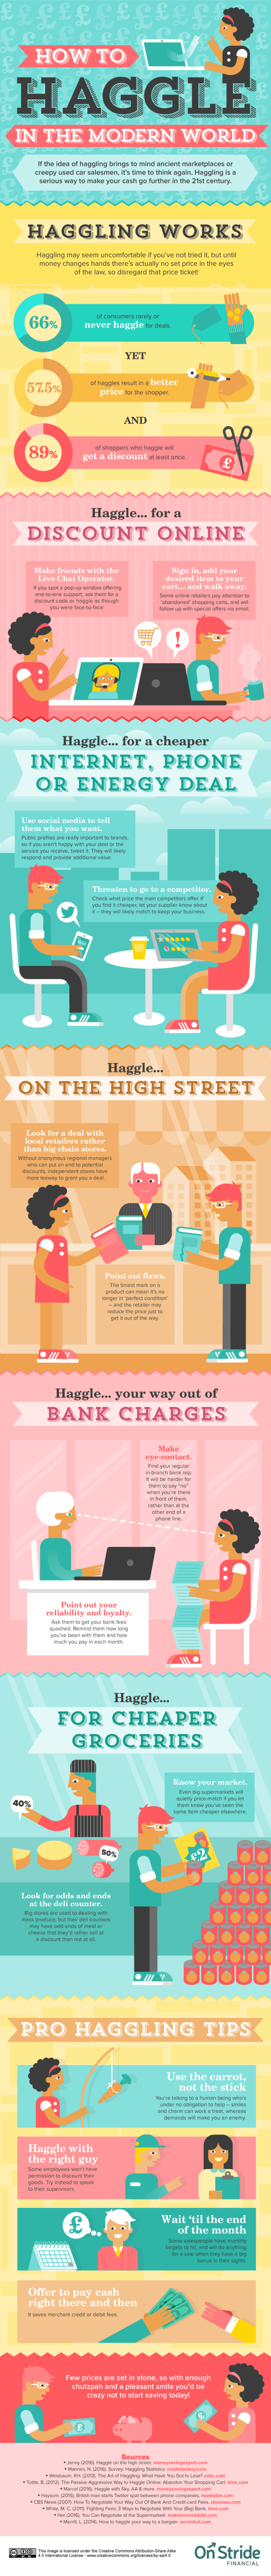 How to Haggle in the Real World Infographic